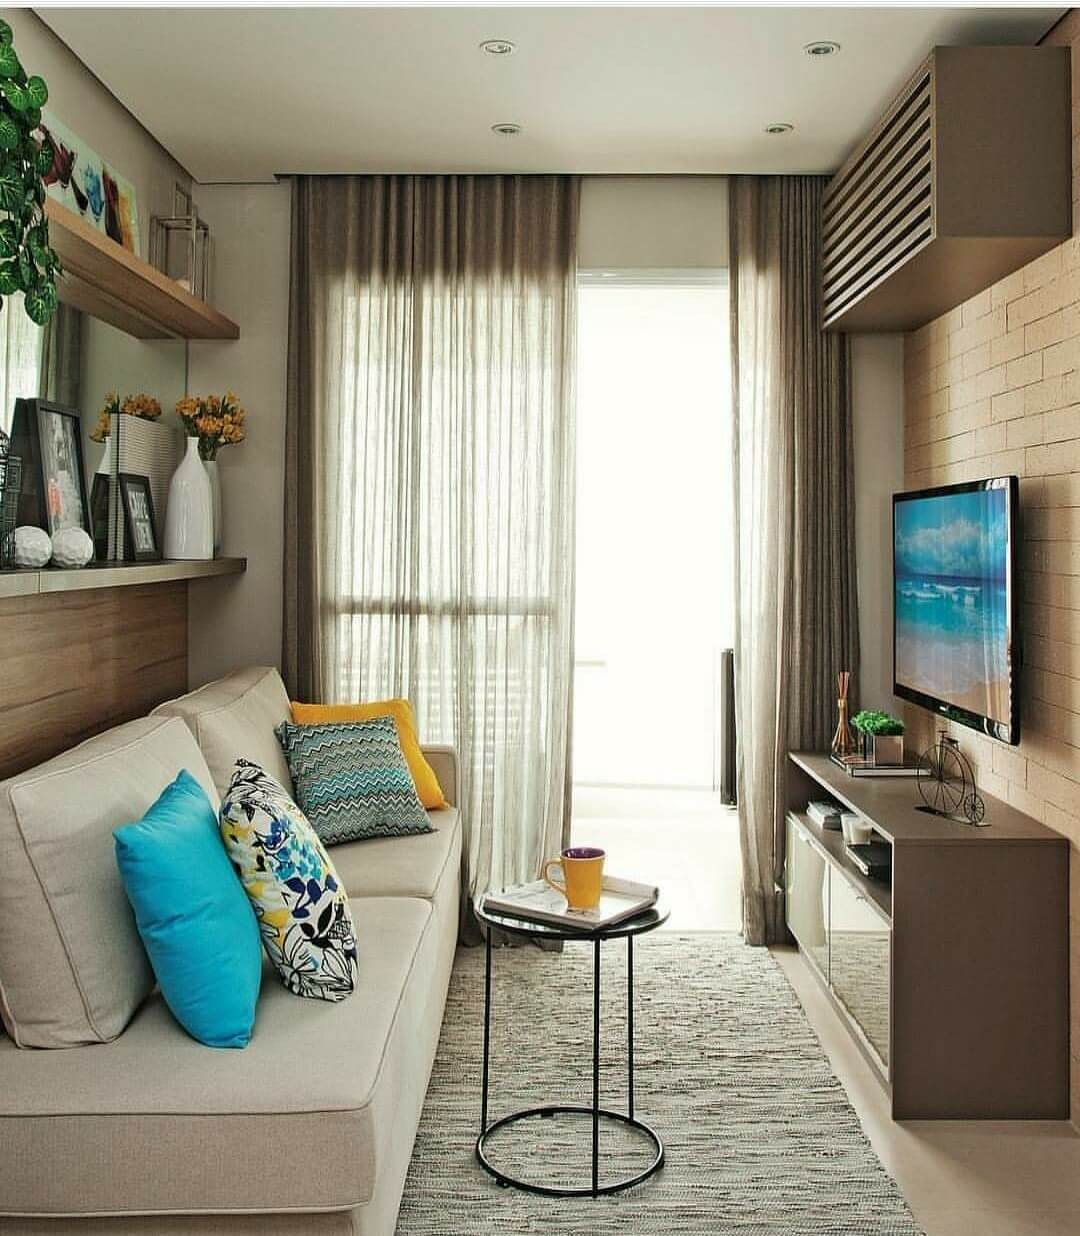 7 Apartment Decorating And Small Living Room Ideas: 25+ Best Small Living Room Decor And Design Ideas For 2019